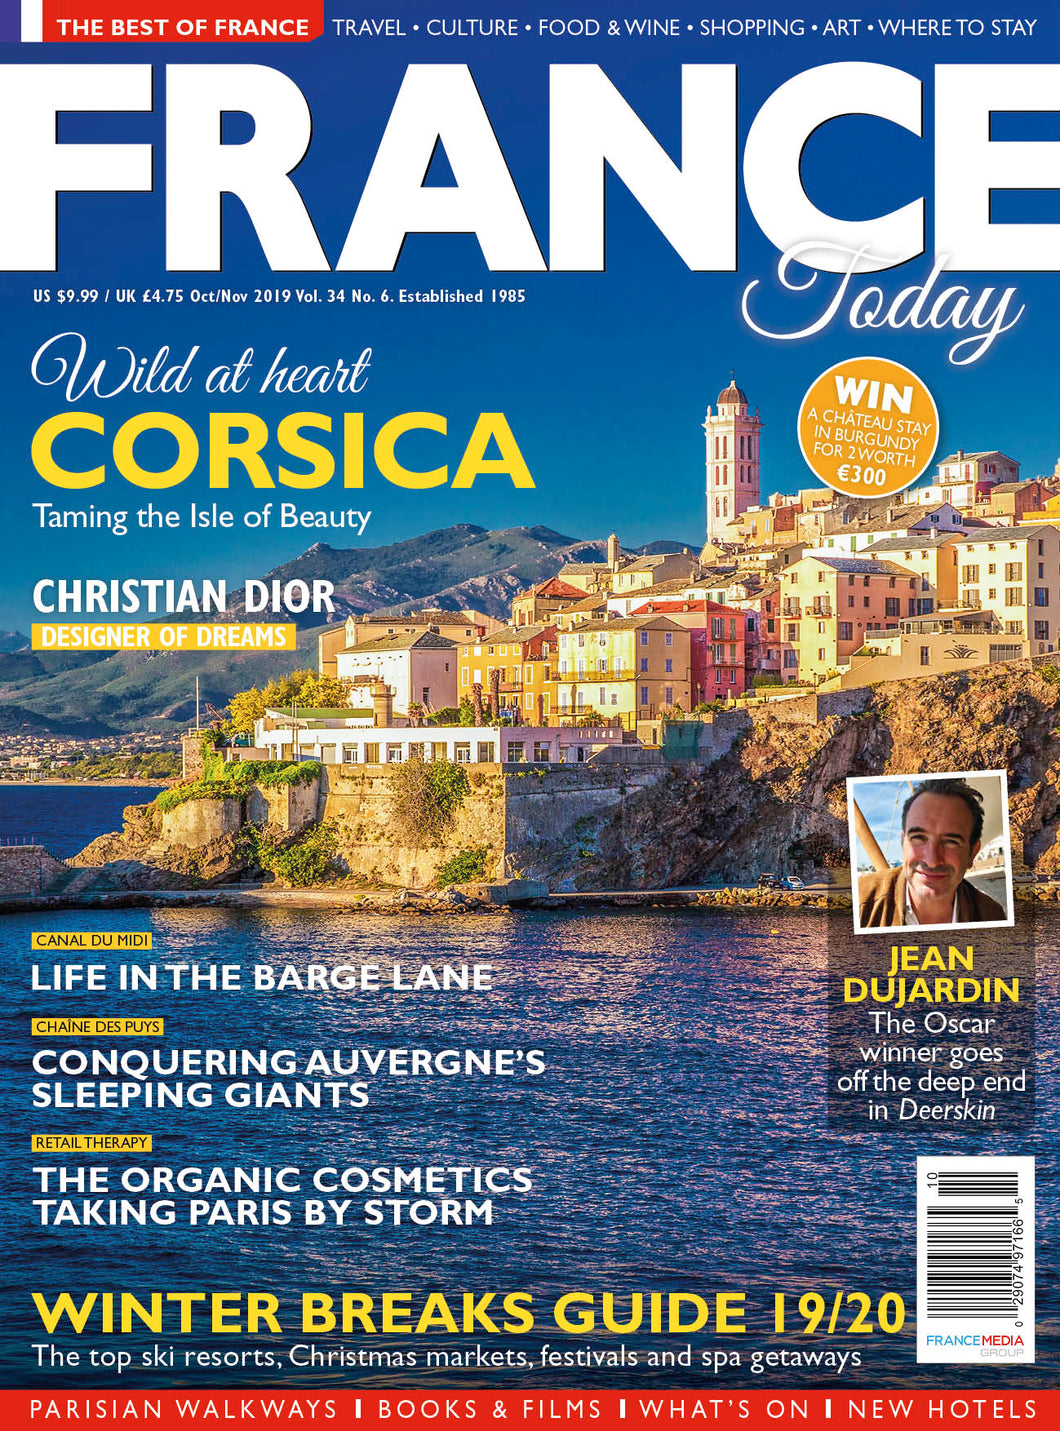 Issue 176 (Oct/Nov 2019)